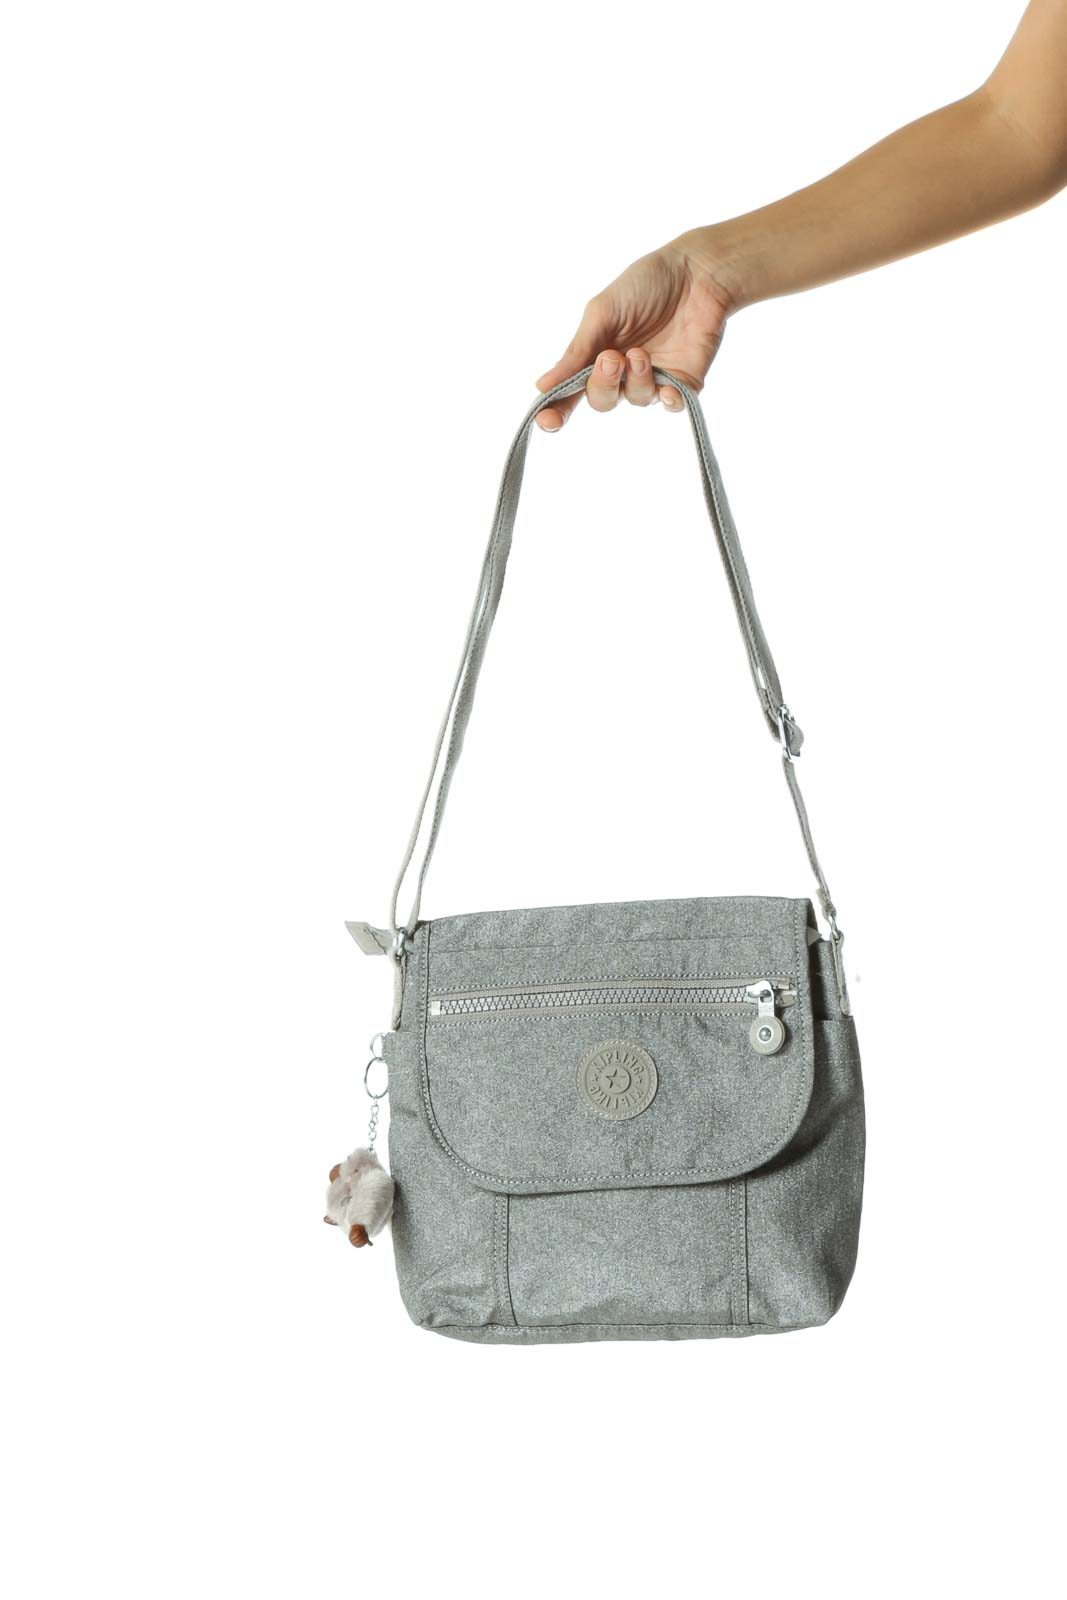 Gray Metallic Zippered Crossbody Bag Front